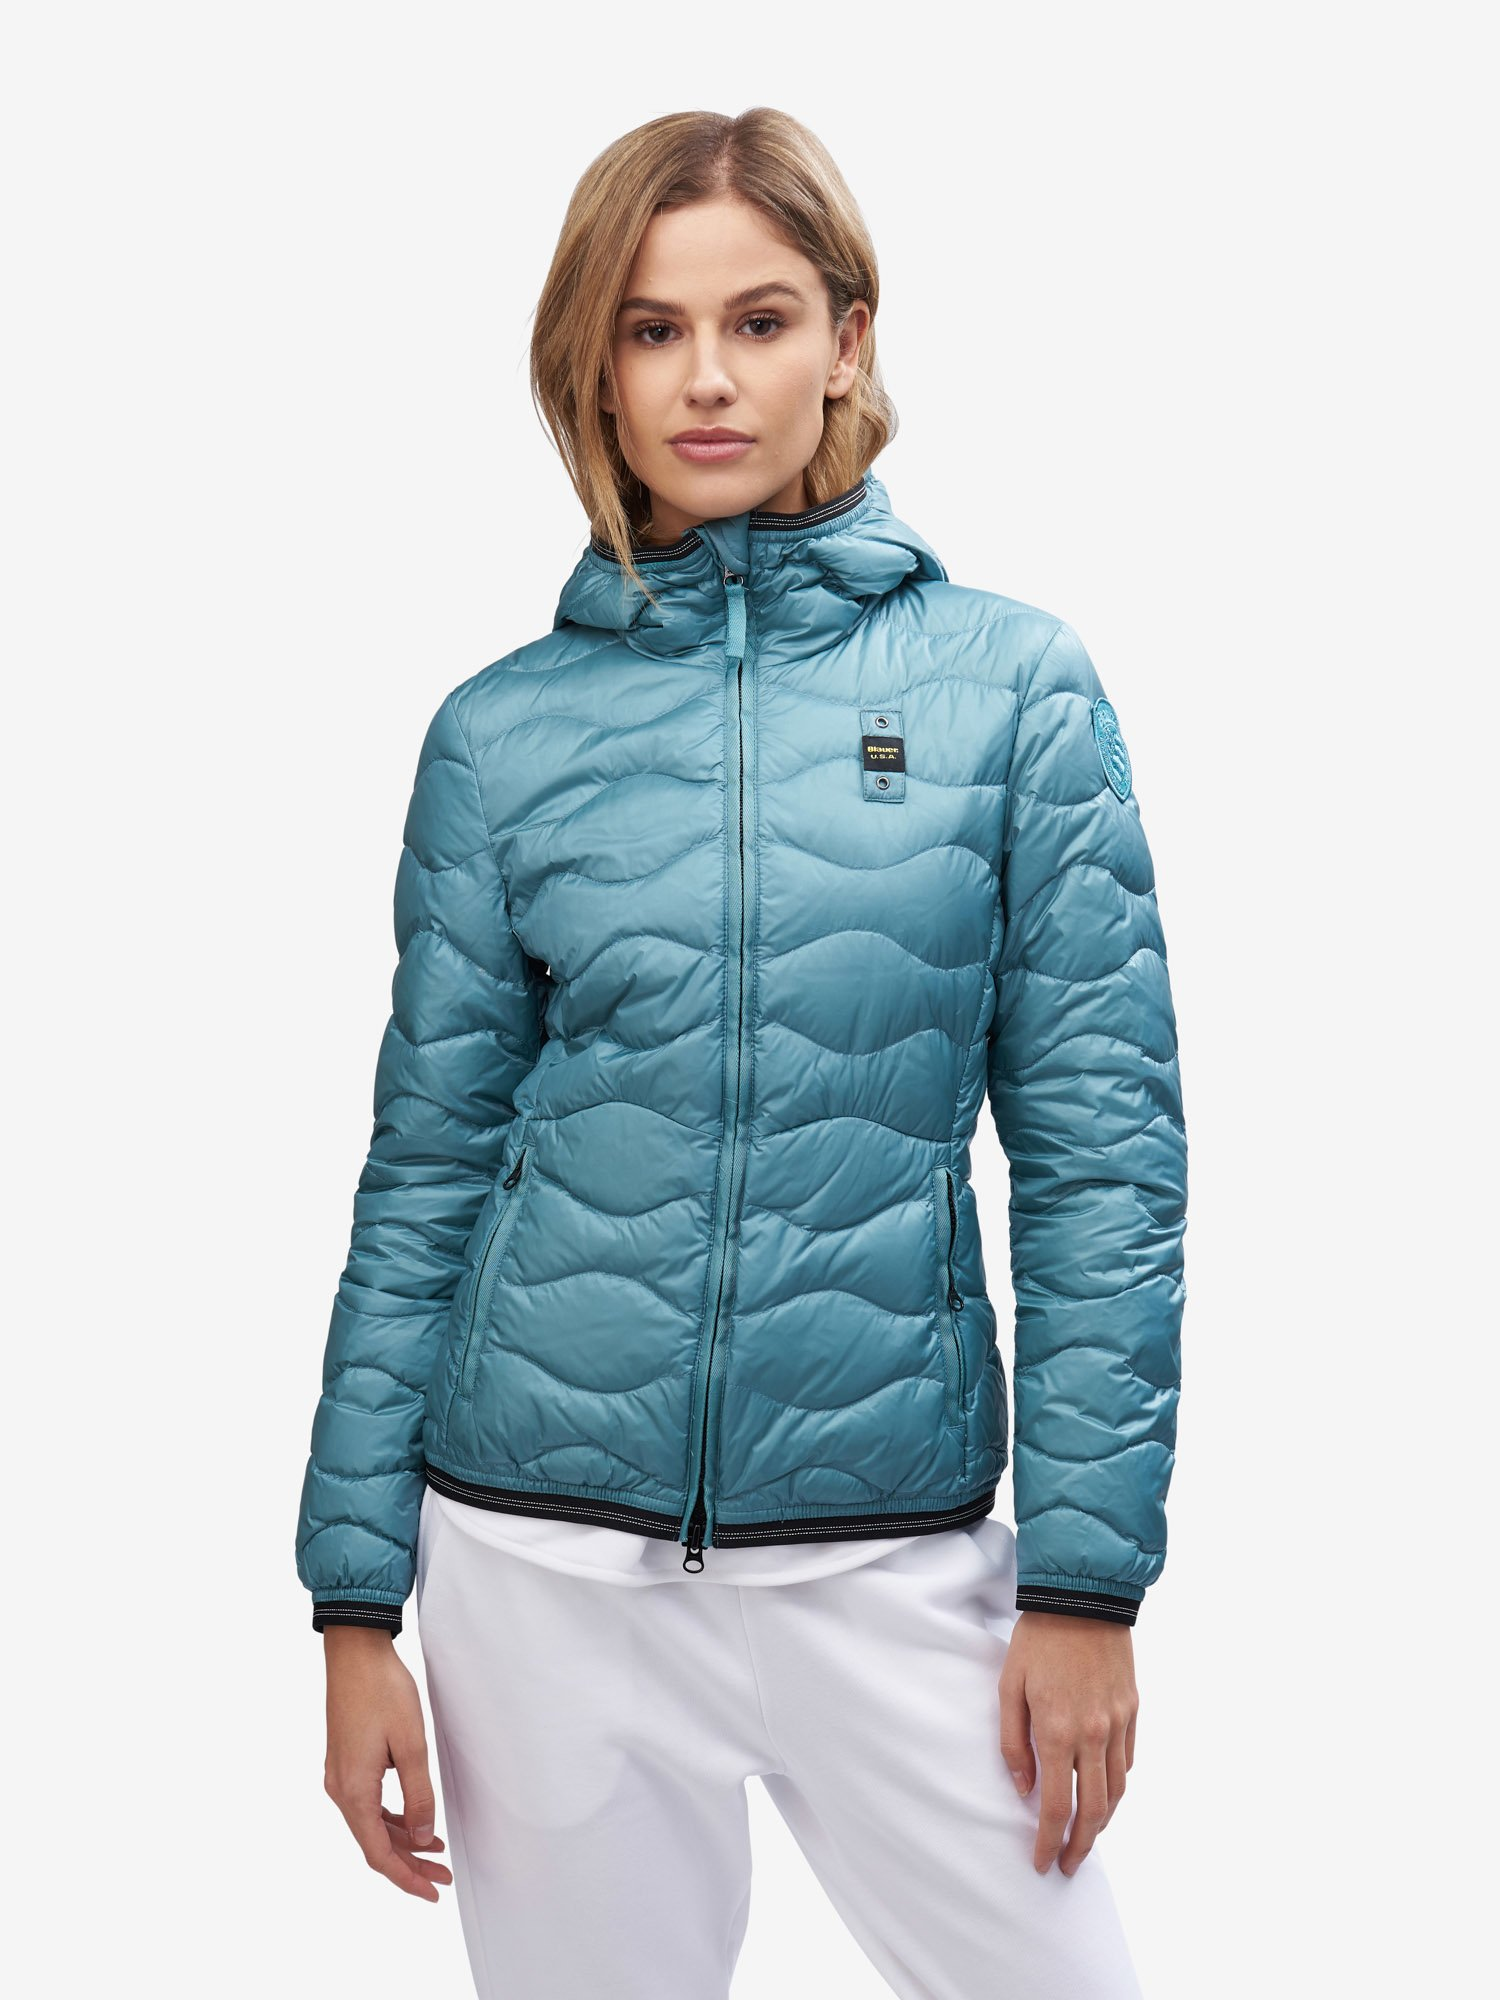 Blauer - FERGUSON WAVE-QUILTED DOWN JACKET - Blue Ocean - Blauer